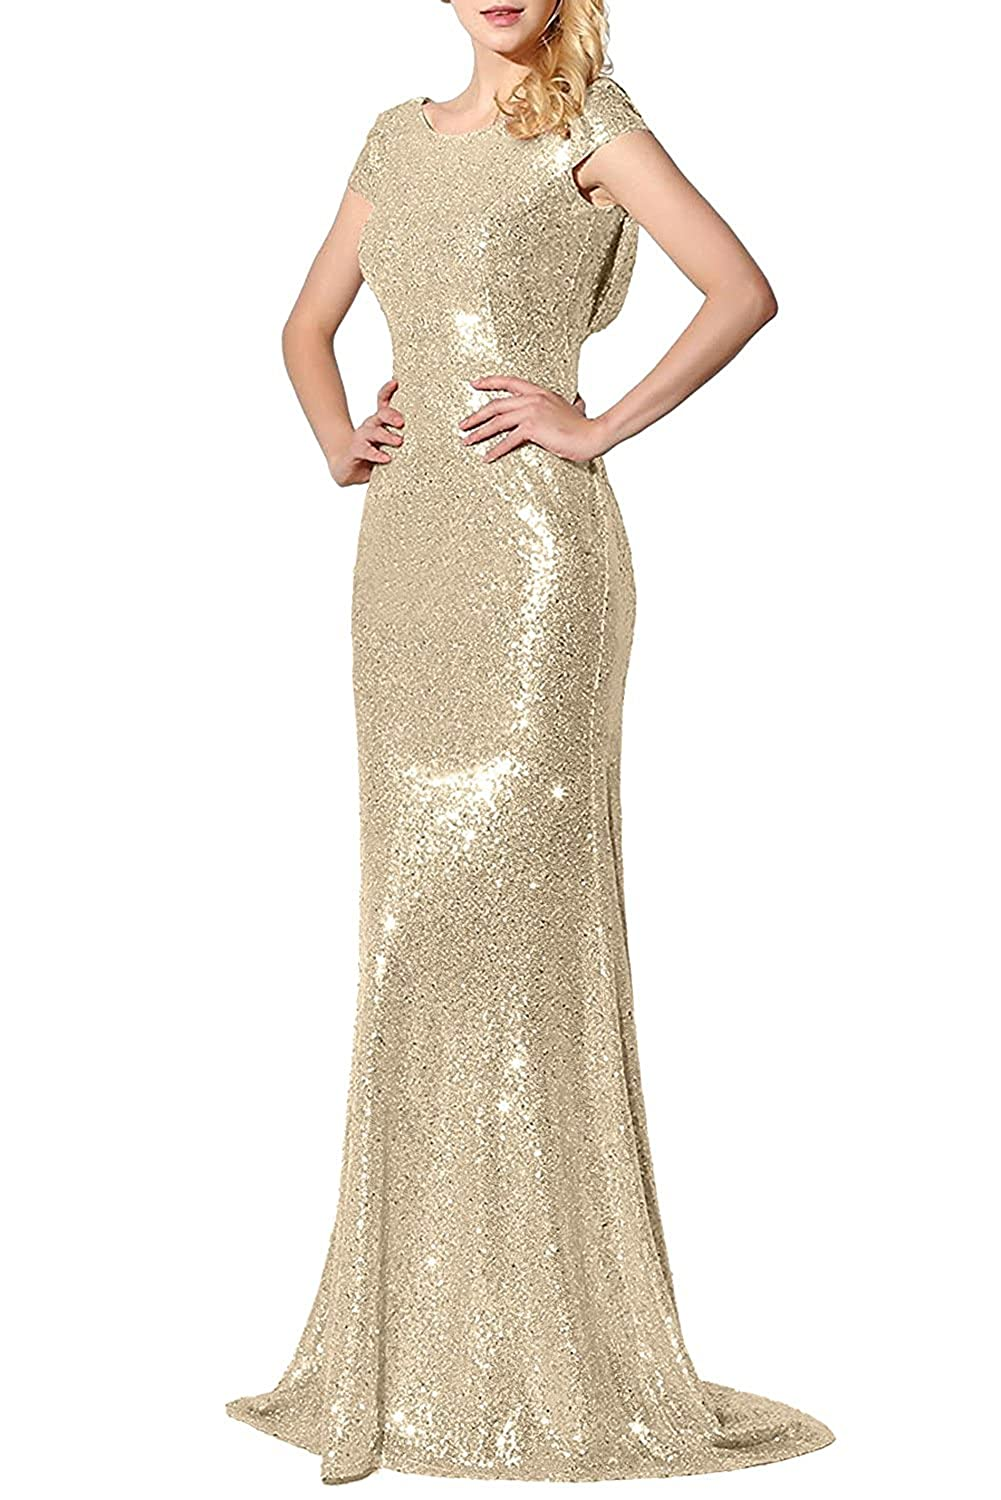 gold1 Promstar Women Elegant gold Sequins Bridesmaid Wedding Dresses Evening Gown